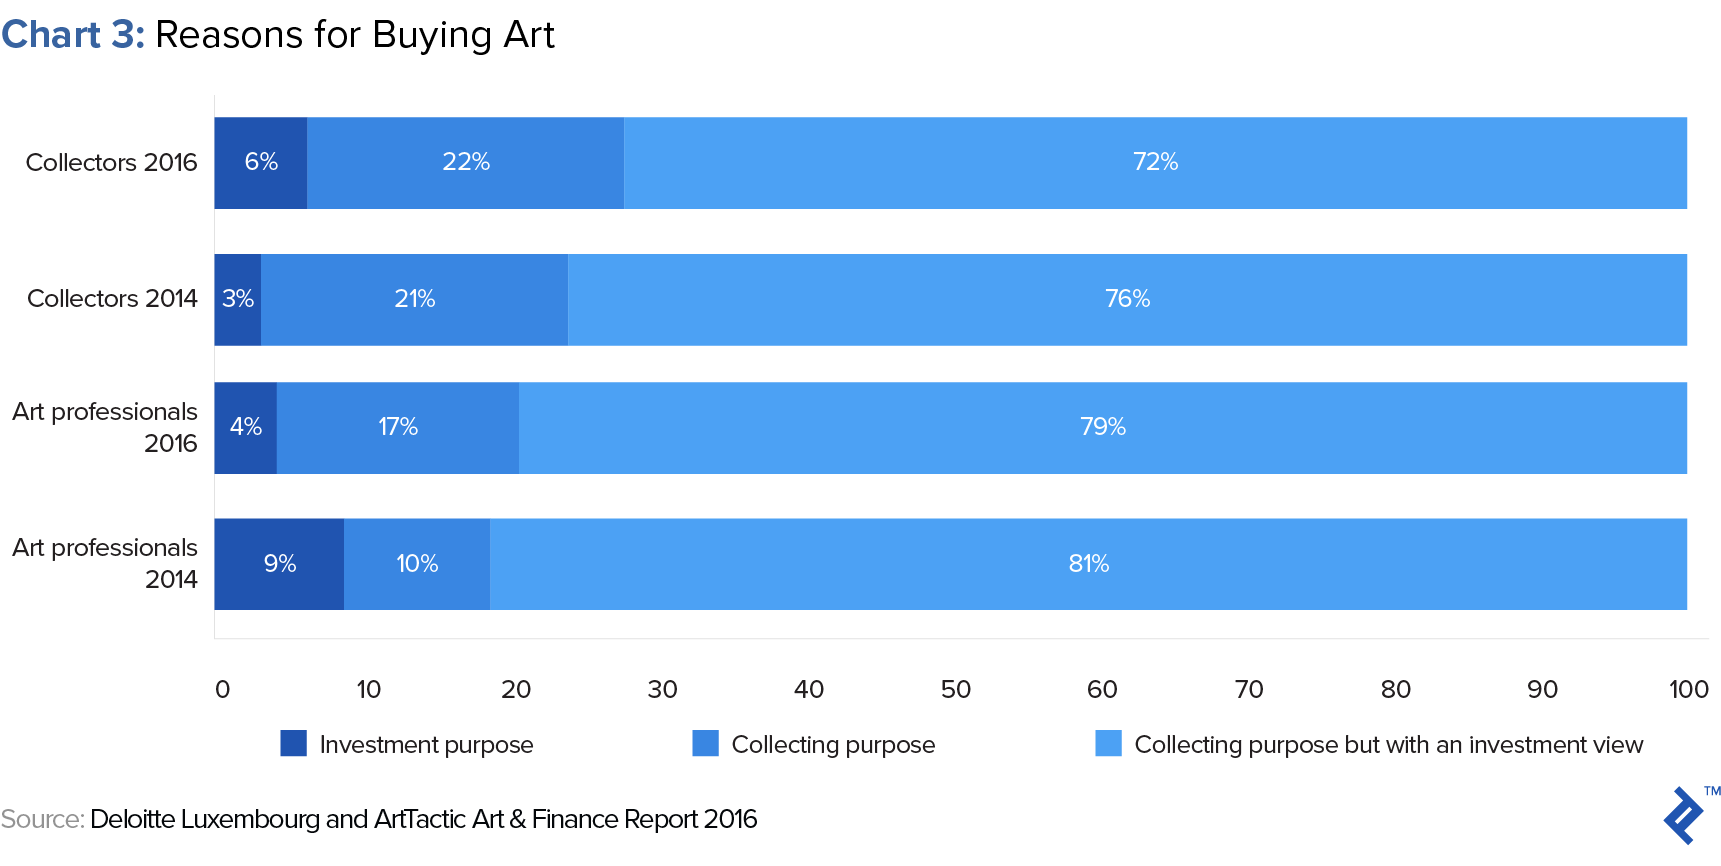 reasons for making art investments